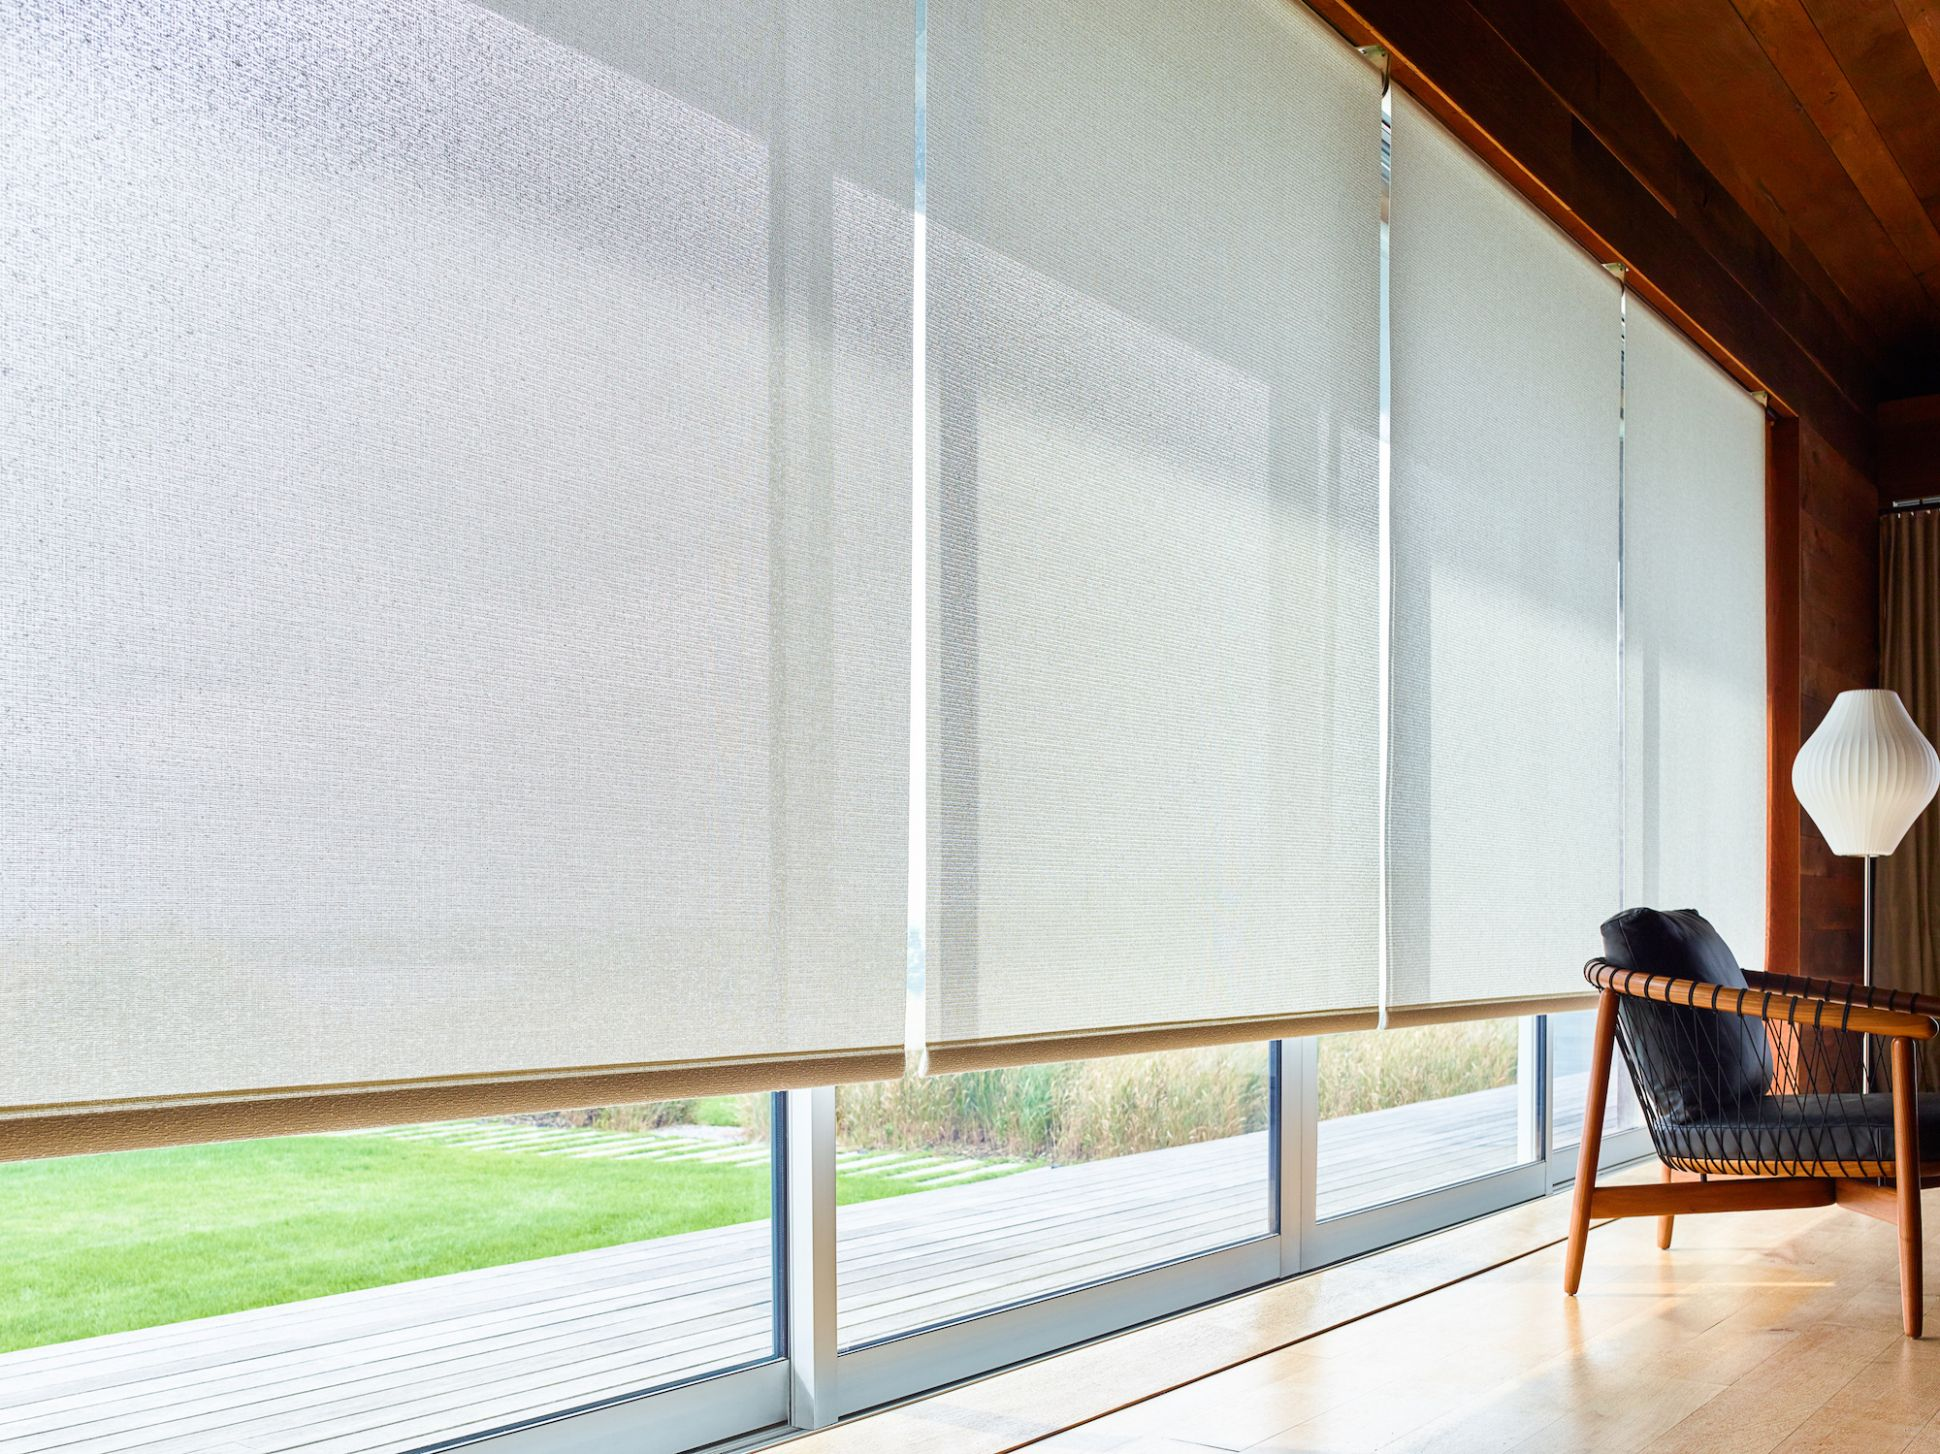 Window Treatments for Sliding Glass & Patio Doors | The Shade Store - window covering ideas for sliding glass doors